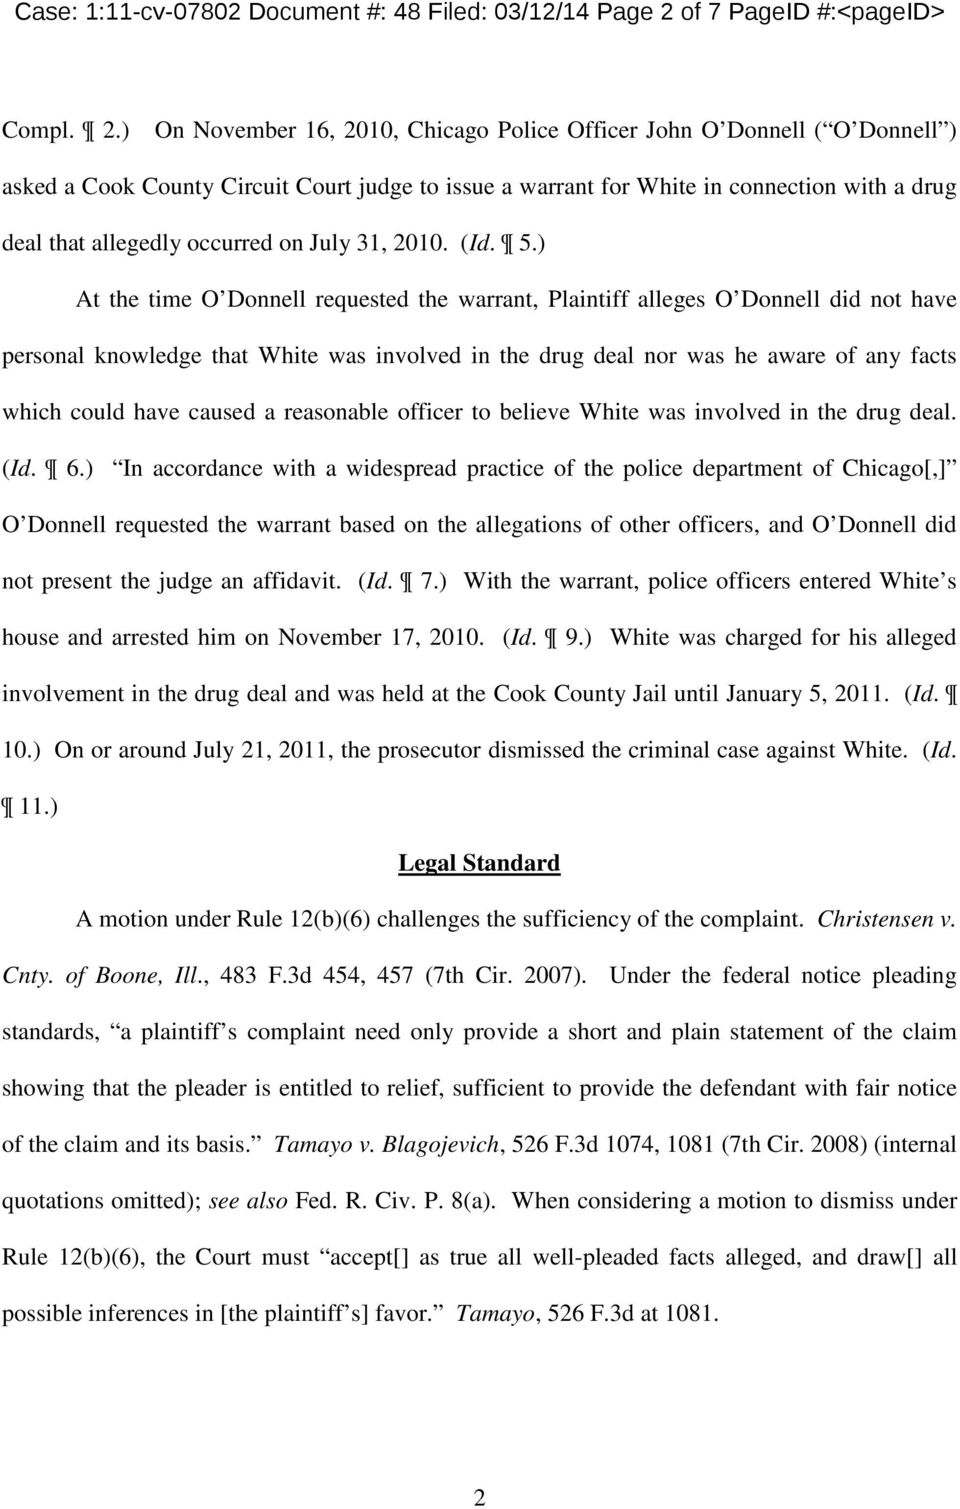 On November 16, 2010, Chicago Police Officer John O Donnell ( O Donnell asked a Cook County Circuit Court judge to issue a warrant for White in connection with a drug deal that allegedly occurred on